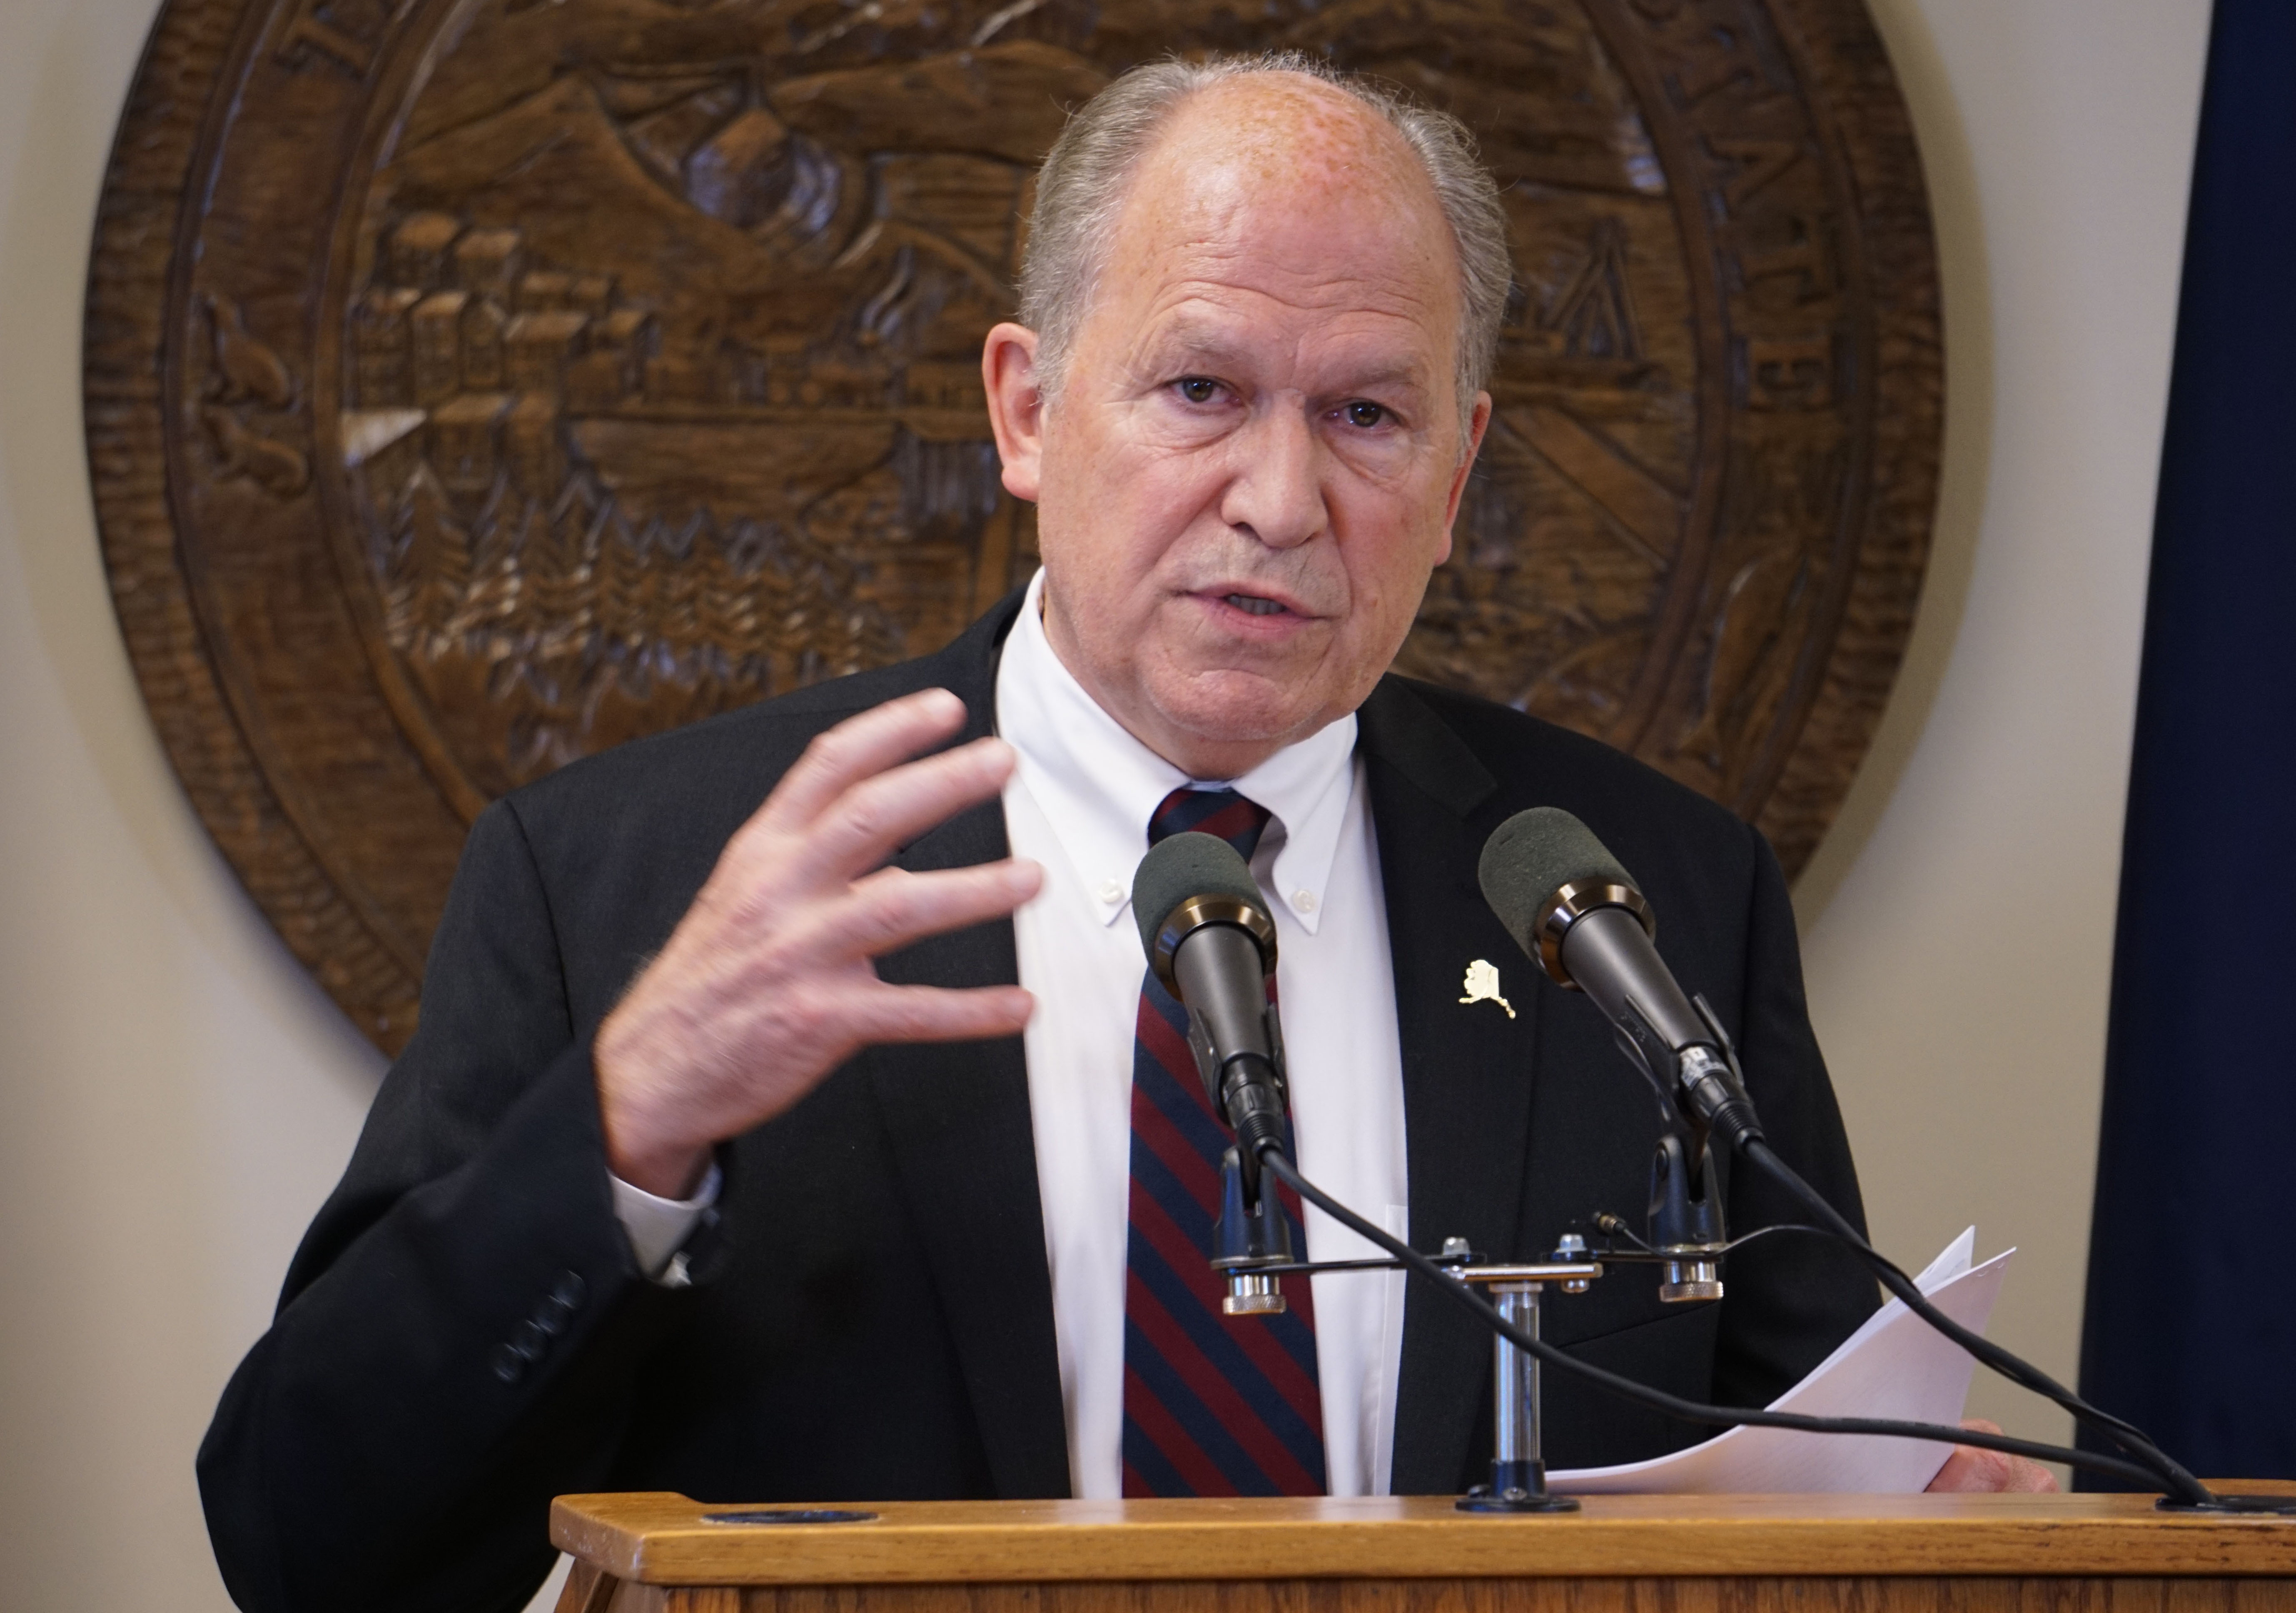 Gov. Bill Walker talks to reporters at his temporary offices in Juneau, June 15, 2016. (Photo by Jeremy Hsieh/KTOO)